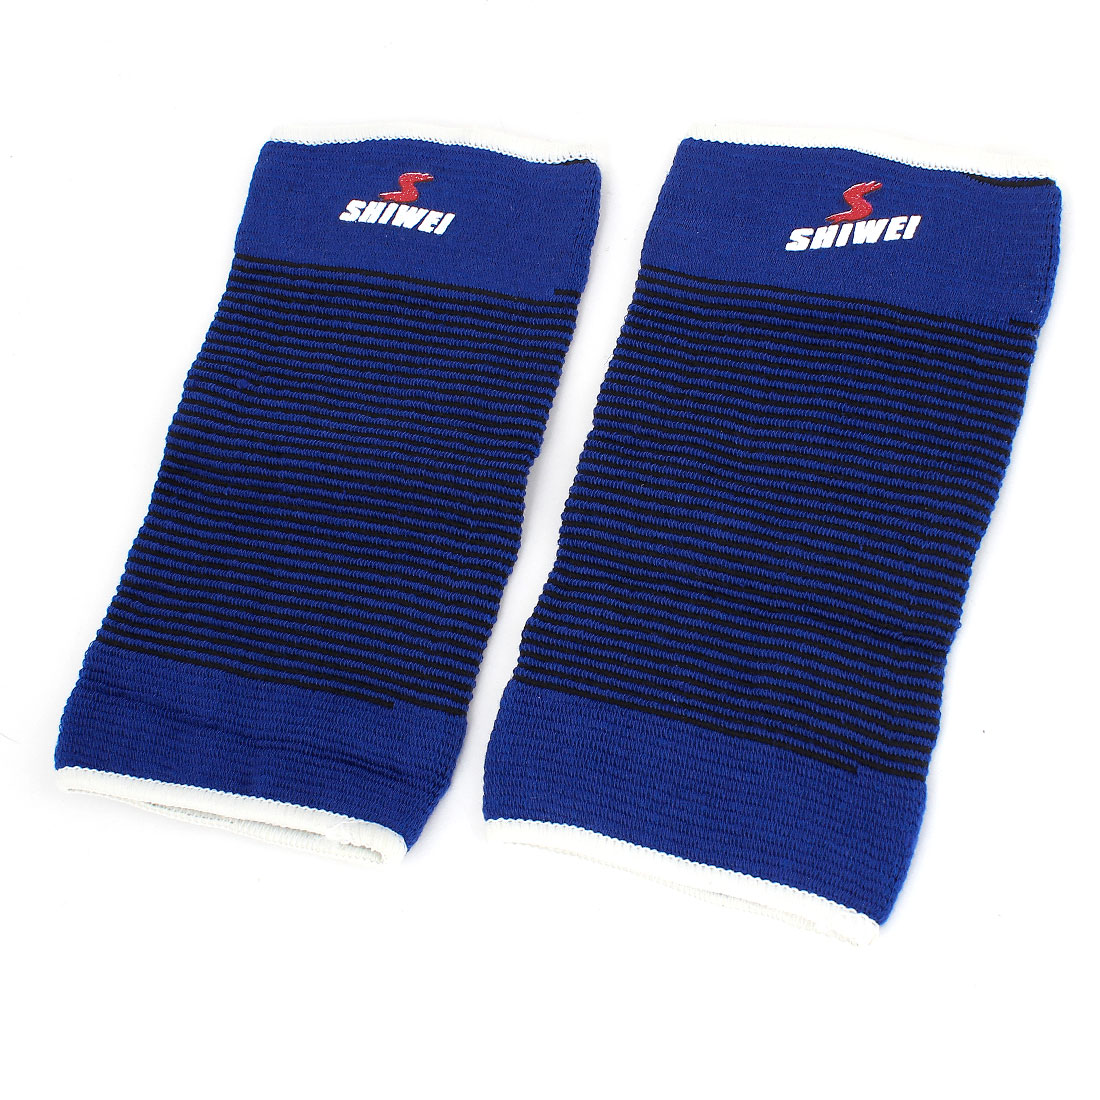 2 Pcs Blue Elastic Textured Knitting Elbow Protecting Sleeve Support